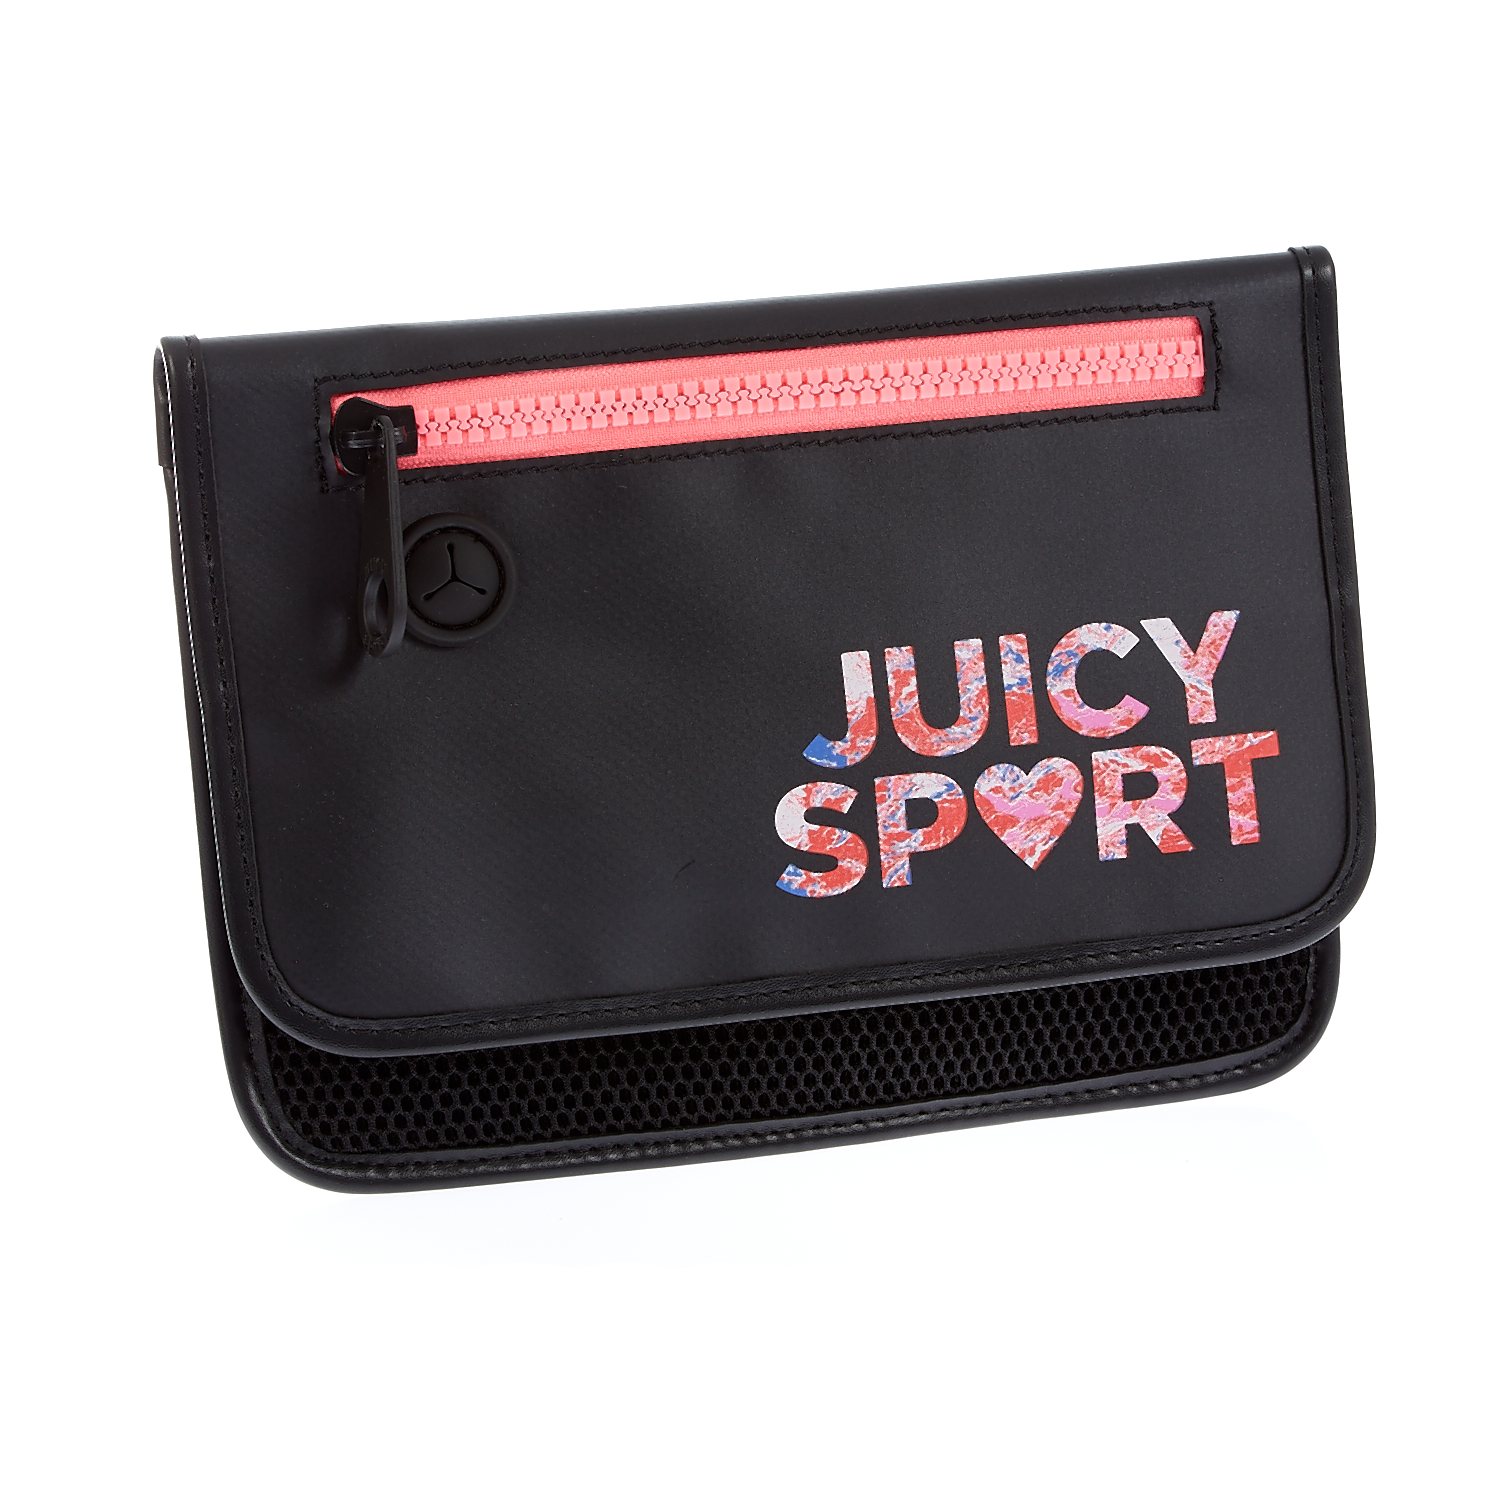 JUICY COUTURE - Γυναικείο τσαντάκι Juicy Couture μαύρο